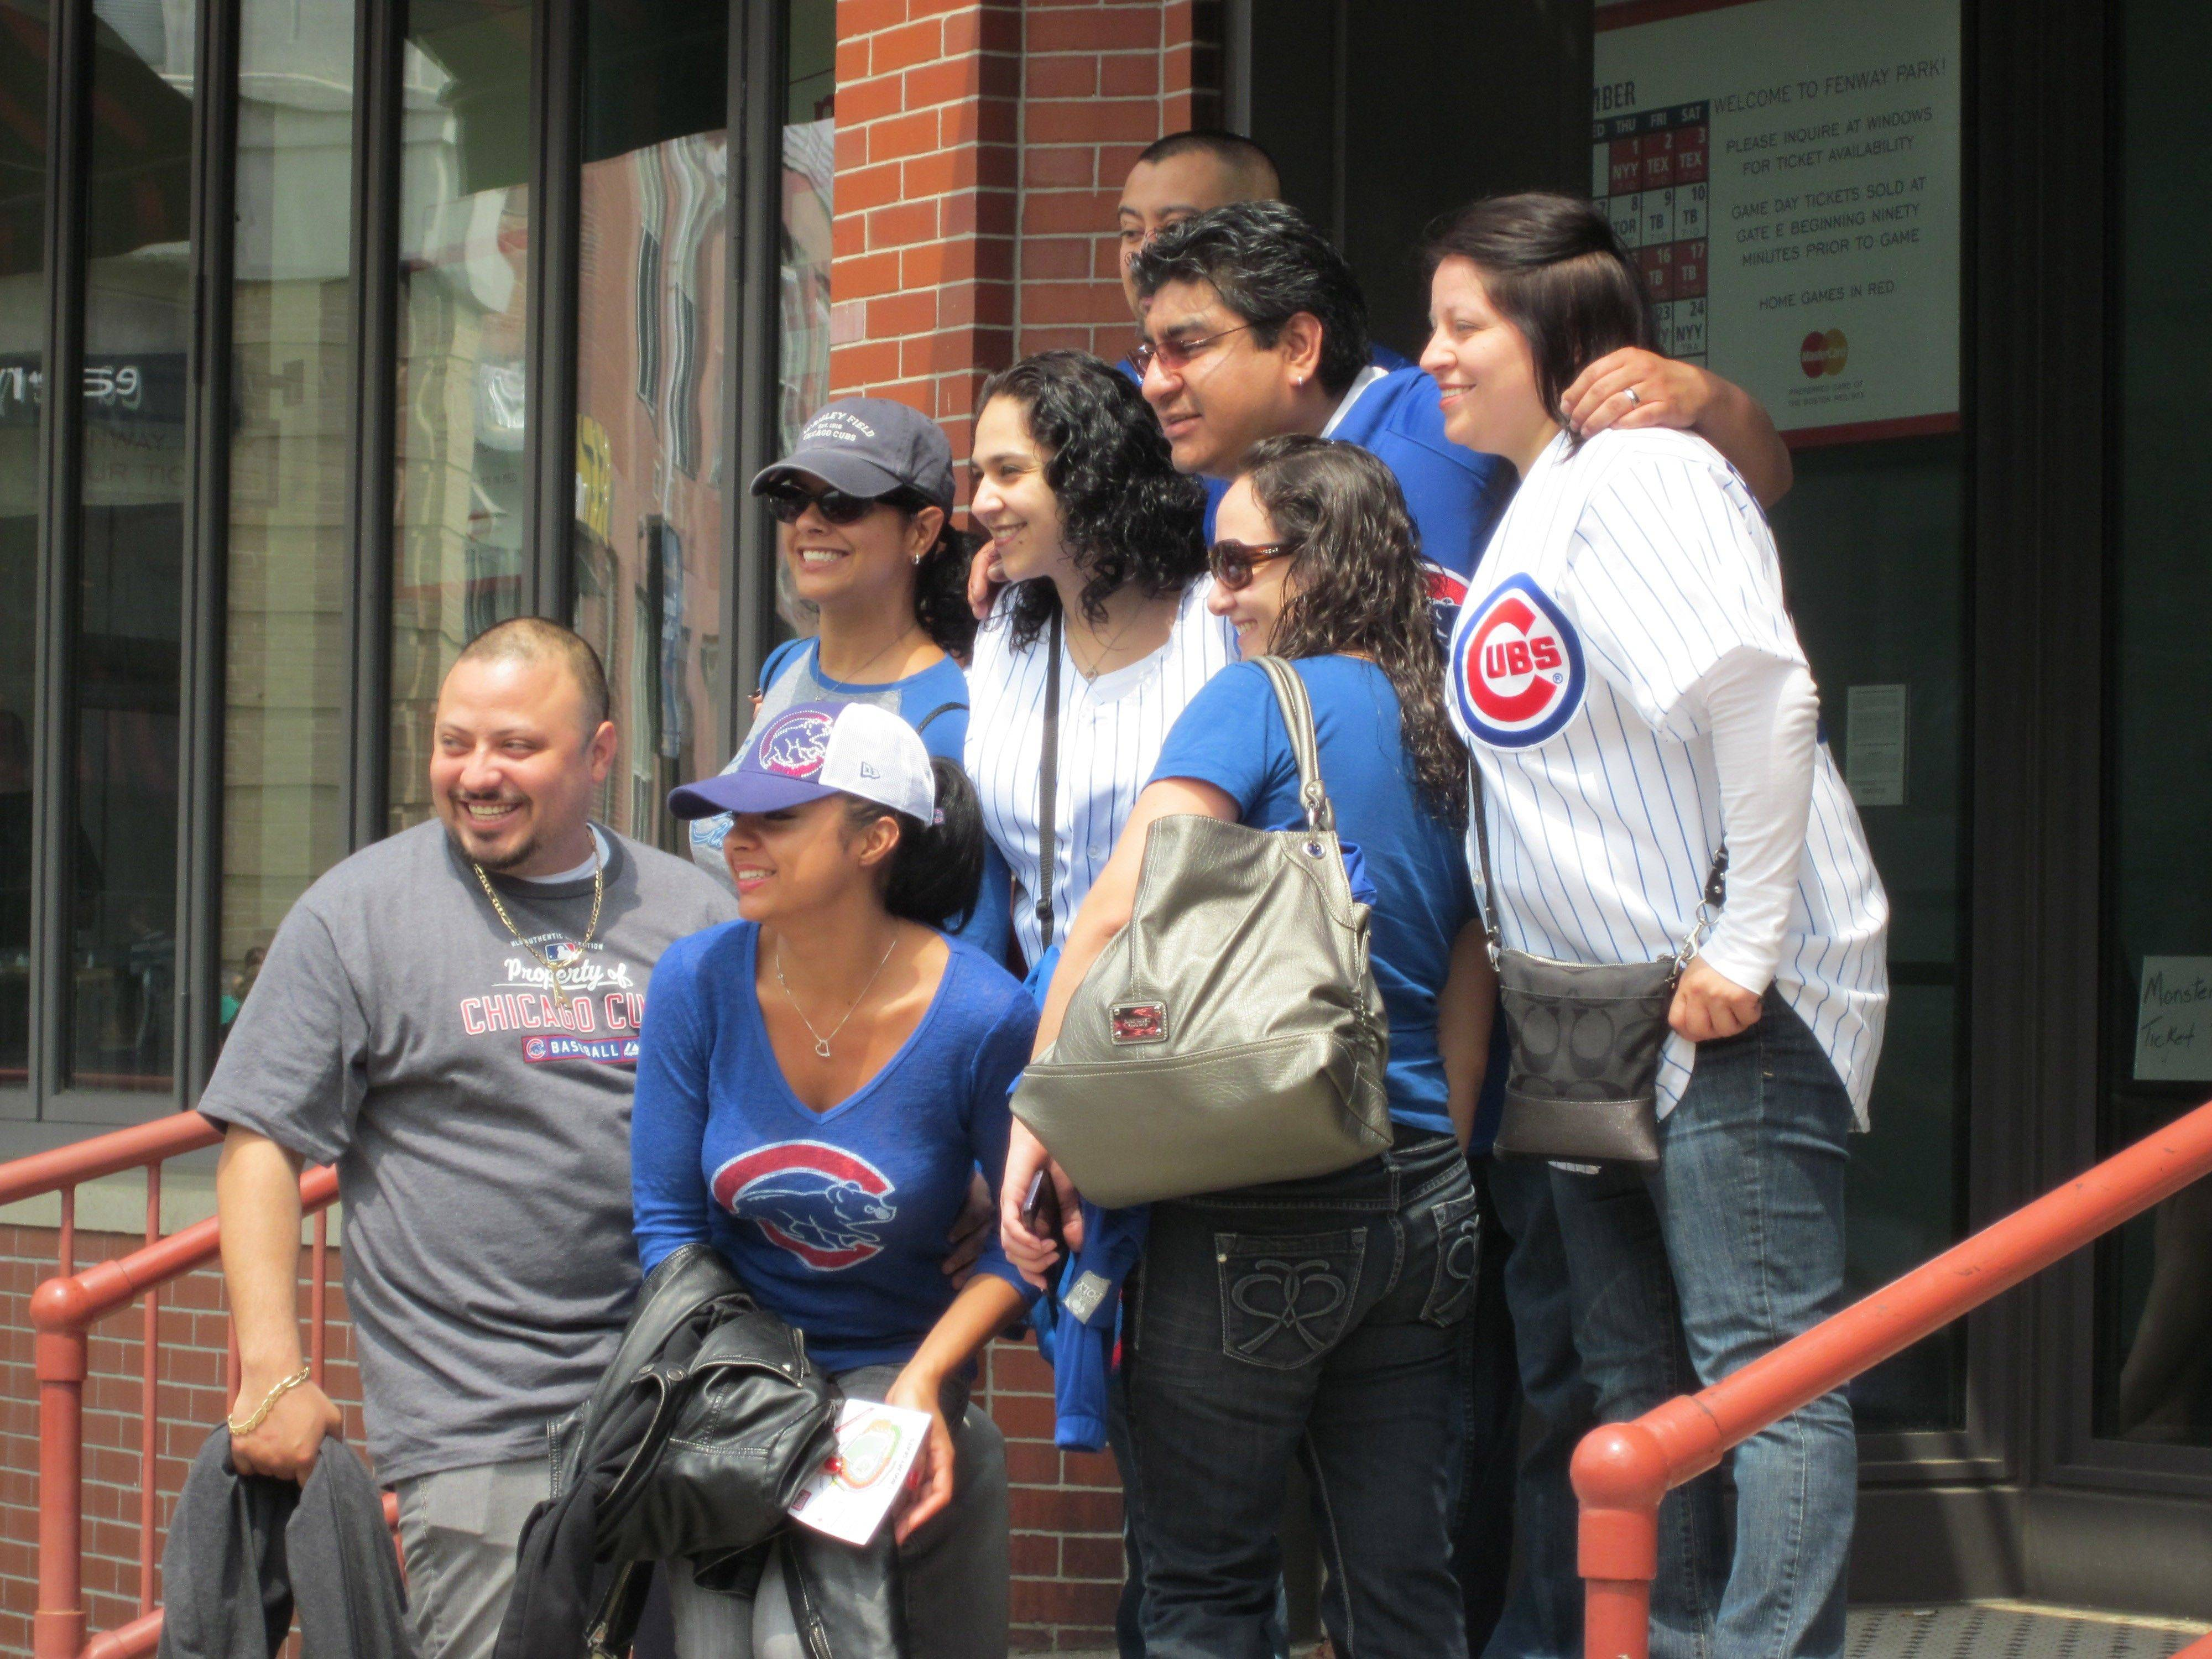 Cubs fans were everywhere Friday outside of Fenway Park, where the Cubs and Red Sox met on Friday, May 20, for the first time since the 1918 World Series.